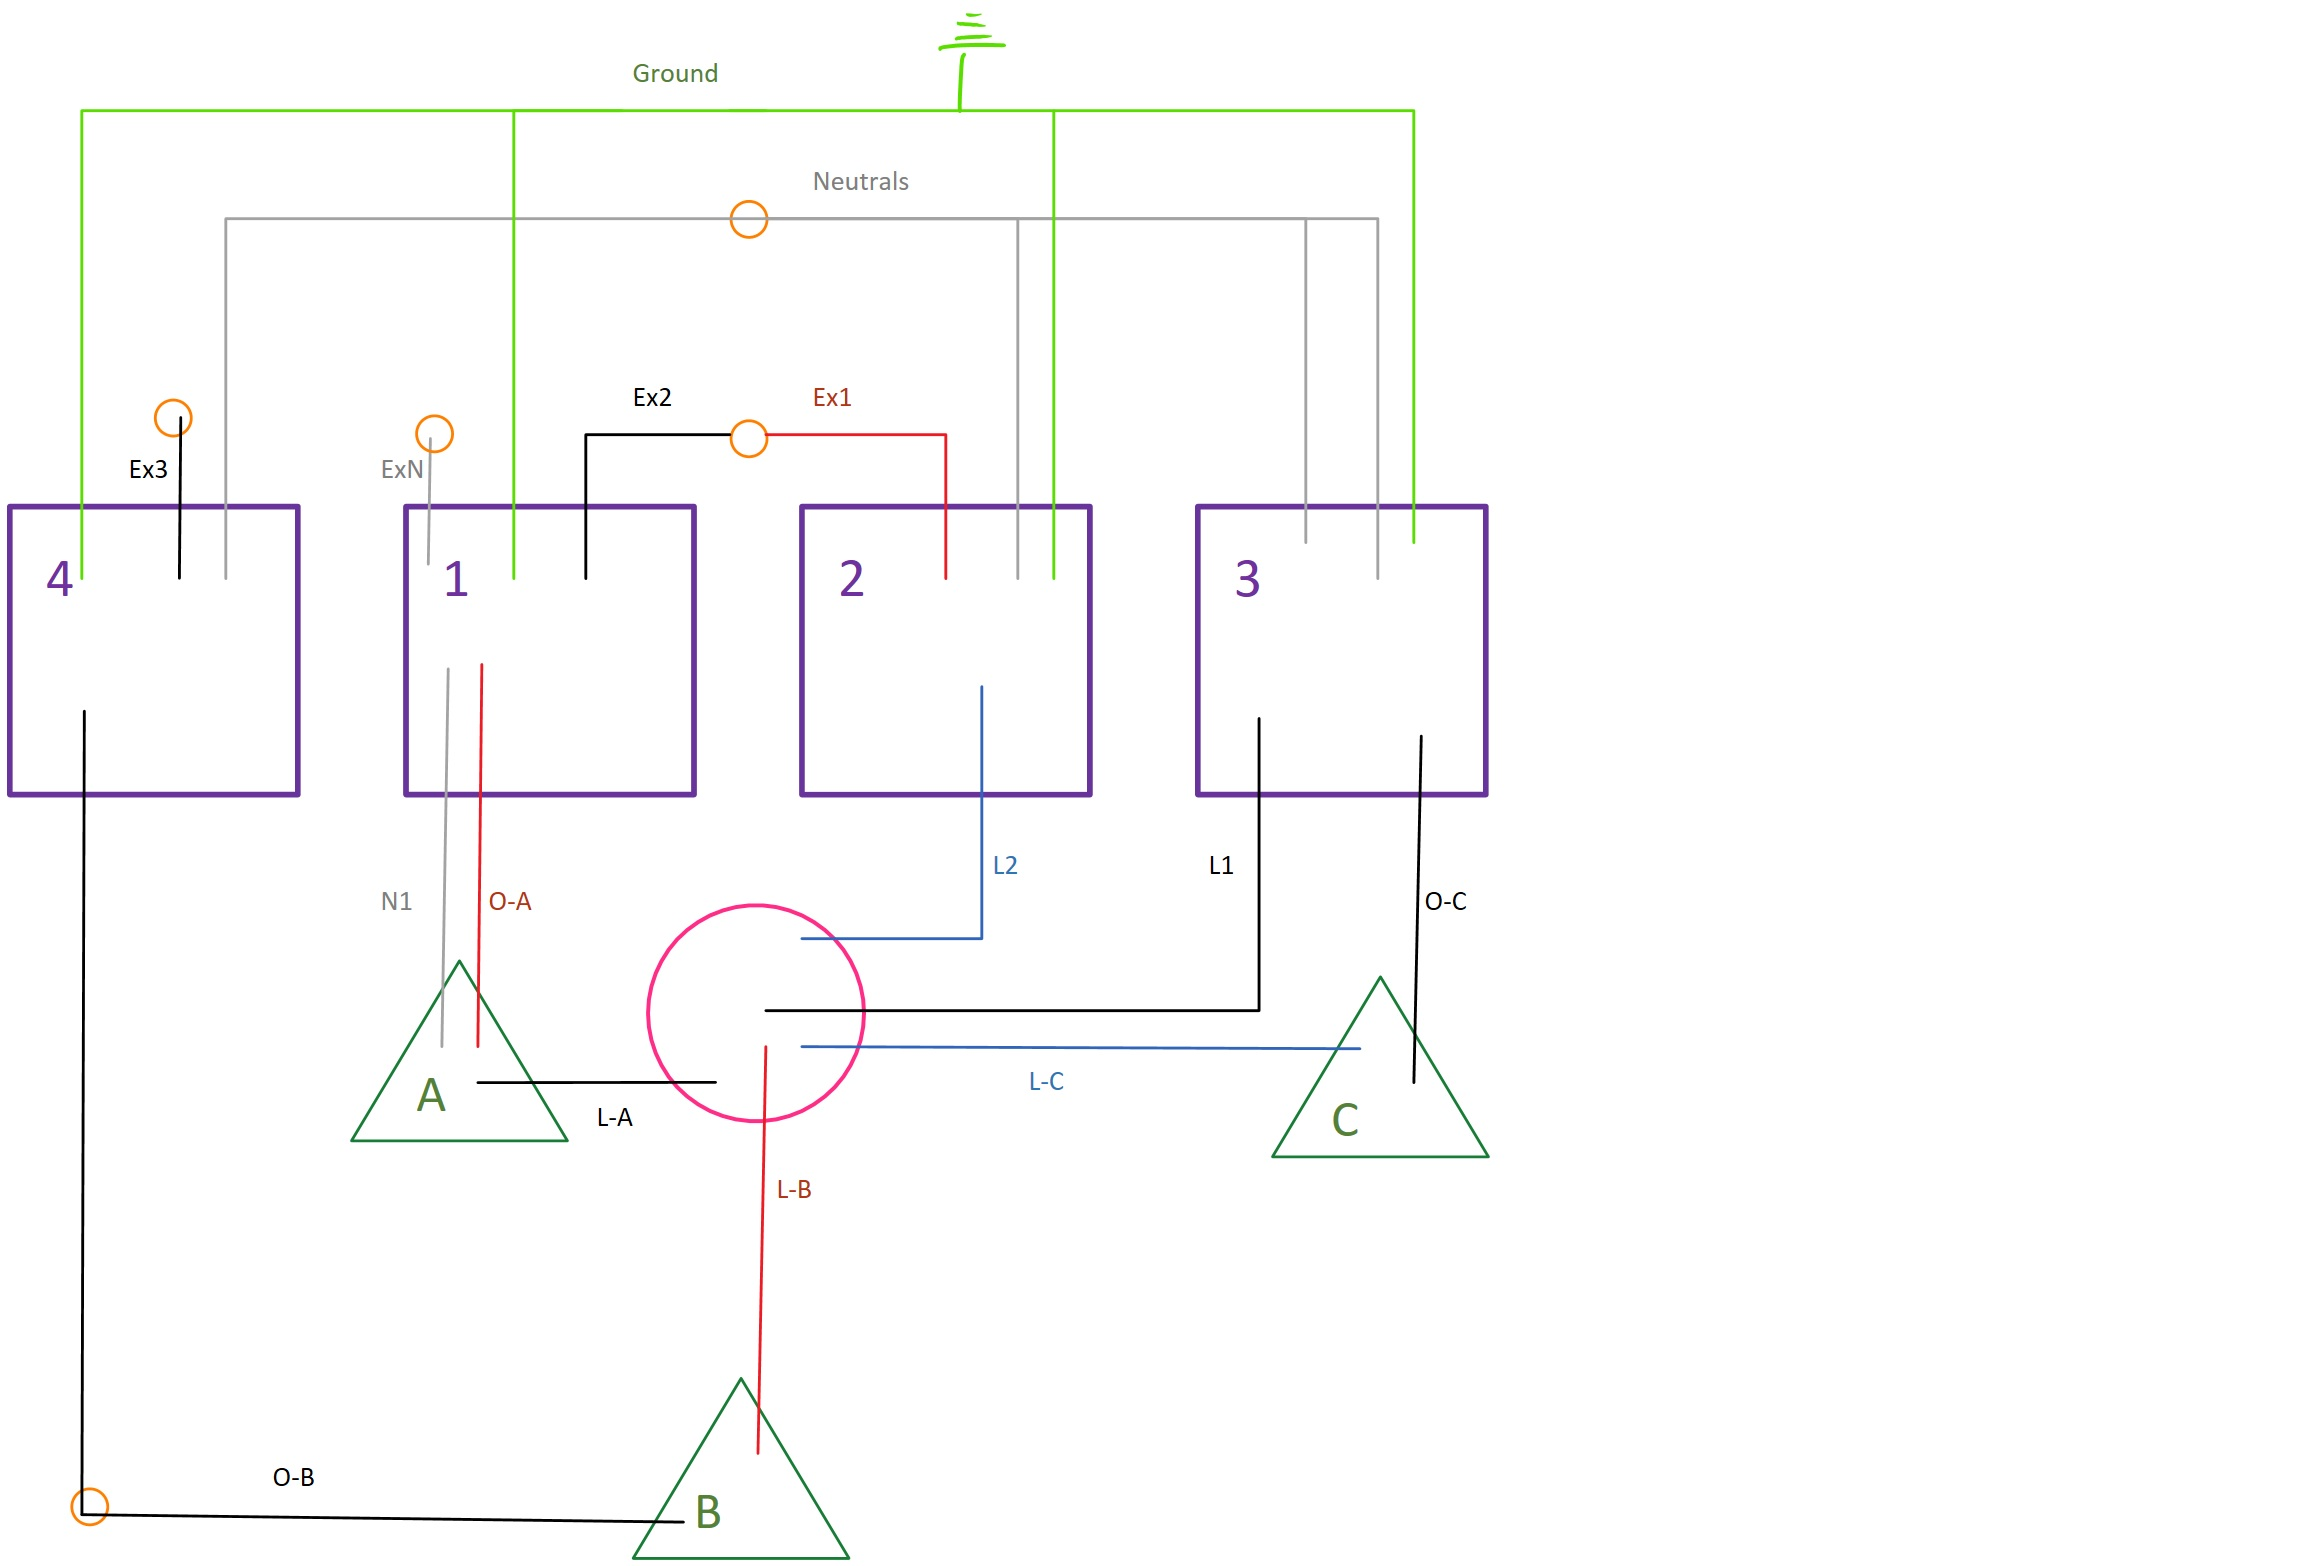 Groovy 3 Gang Switch Box Wiring Diagram Basic Electronics Wiring Diagram Wiring Cloud Pimpapsuggs Outletorg